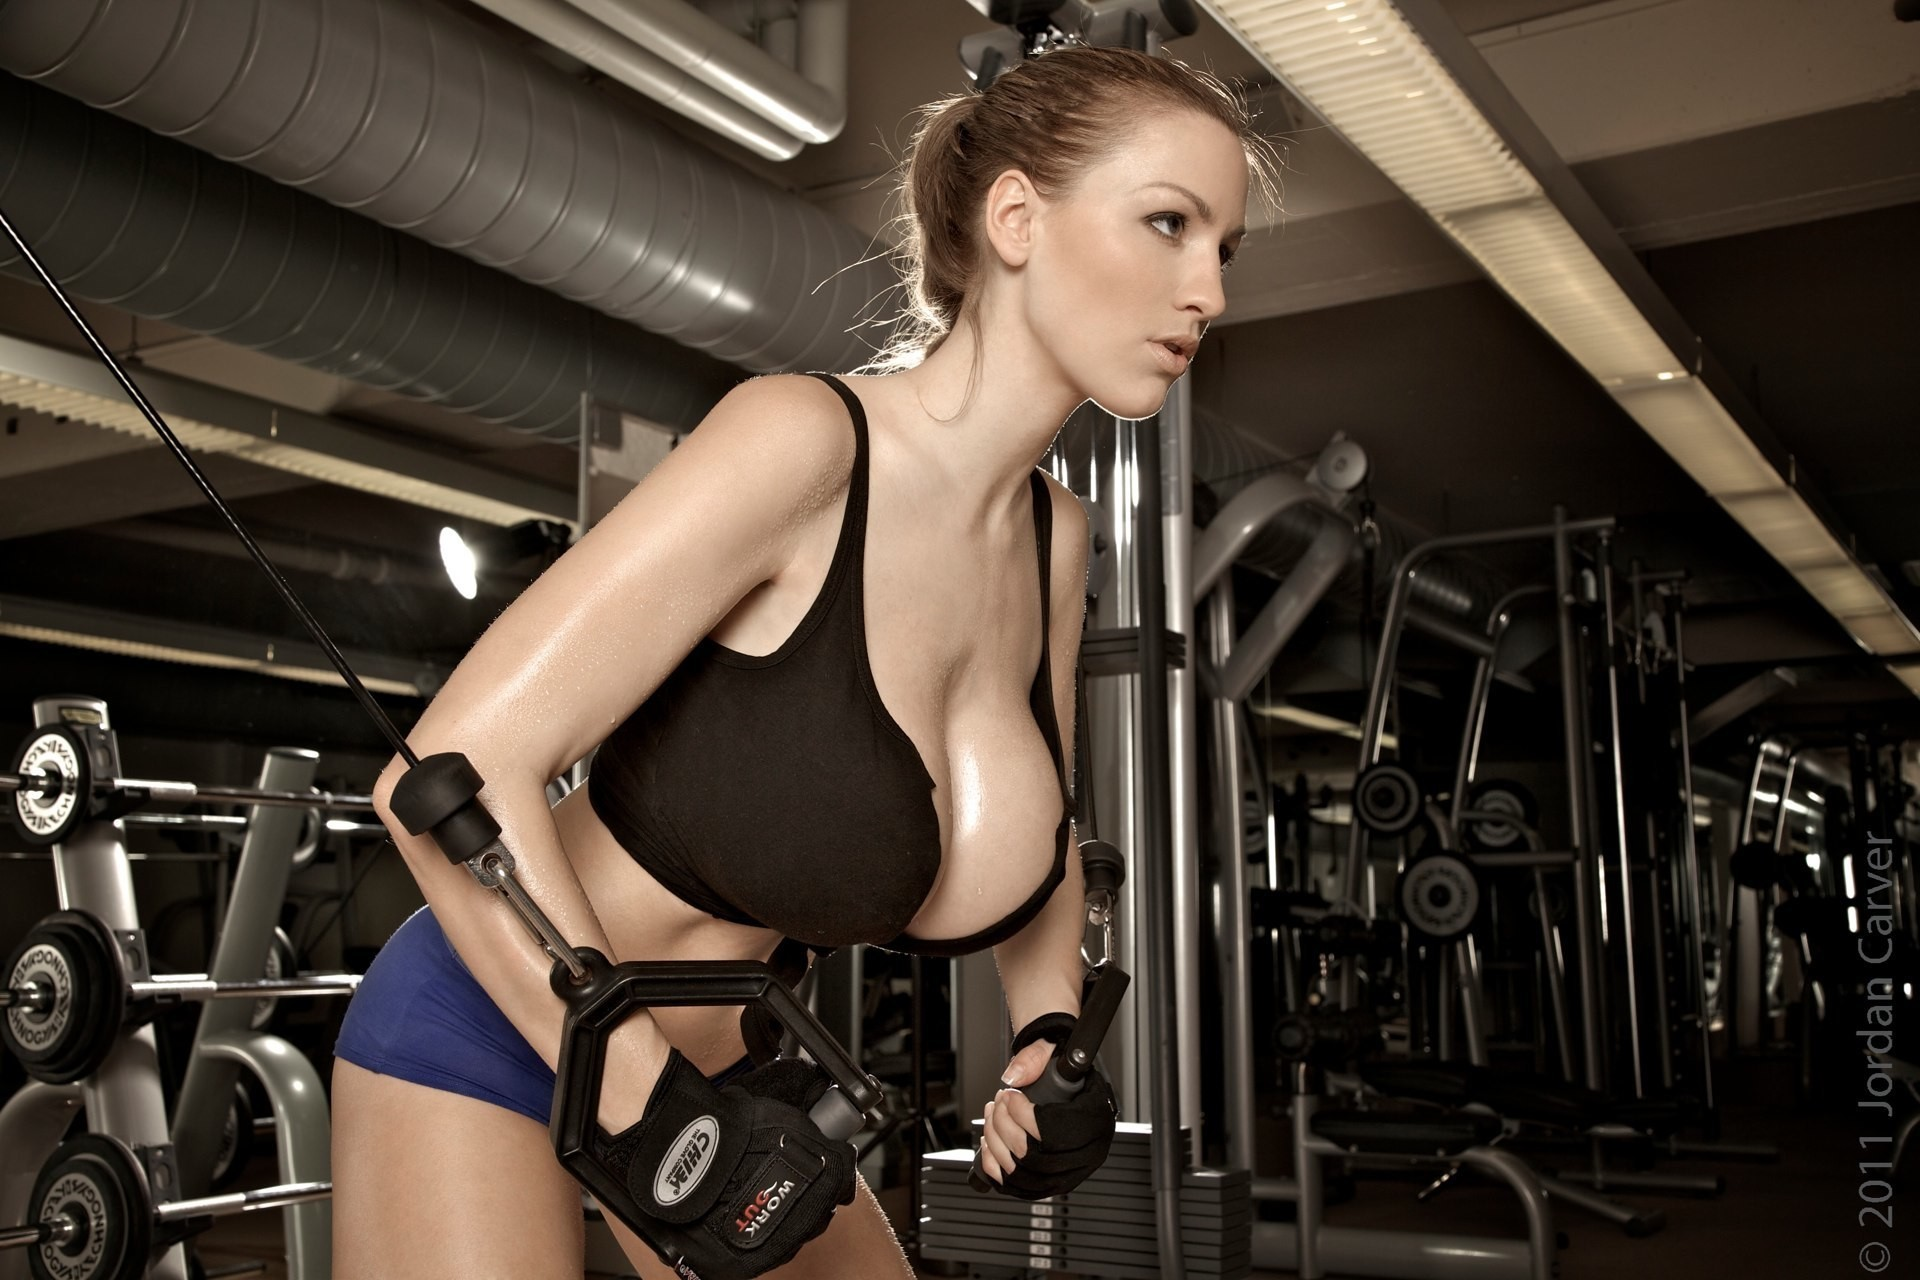 Jordan Carver workout depth HD Wallpaper